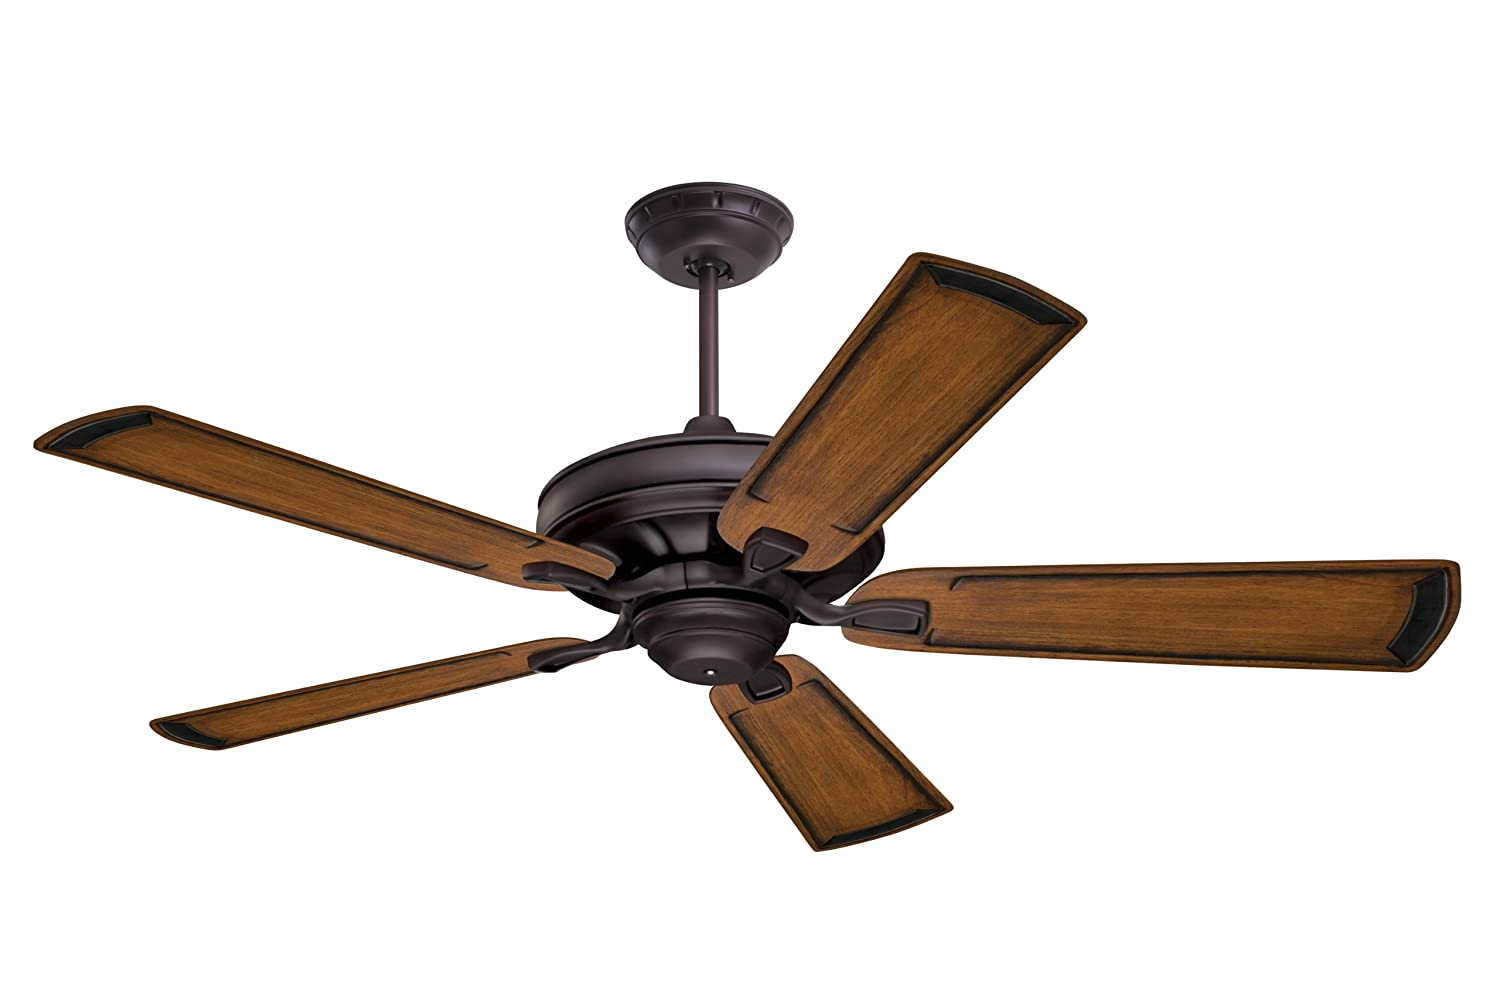 Emerson ceiling fans cf788orb carrera grande eco indoor outdoor emerson ceiling fans cf788orb carrera grande eco indoor outdoor ceiling fan with 6 speed wall control energy star and damp rated blades sold separately mozeypictures Images